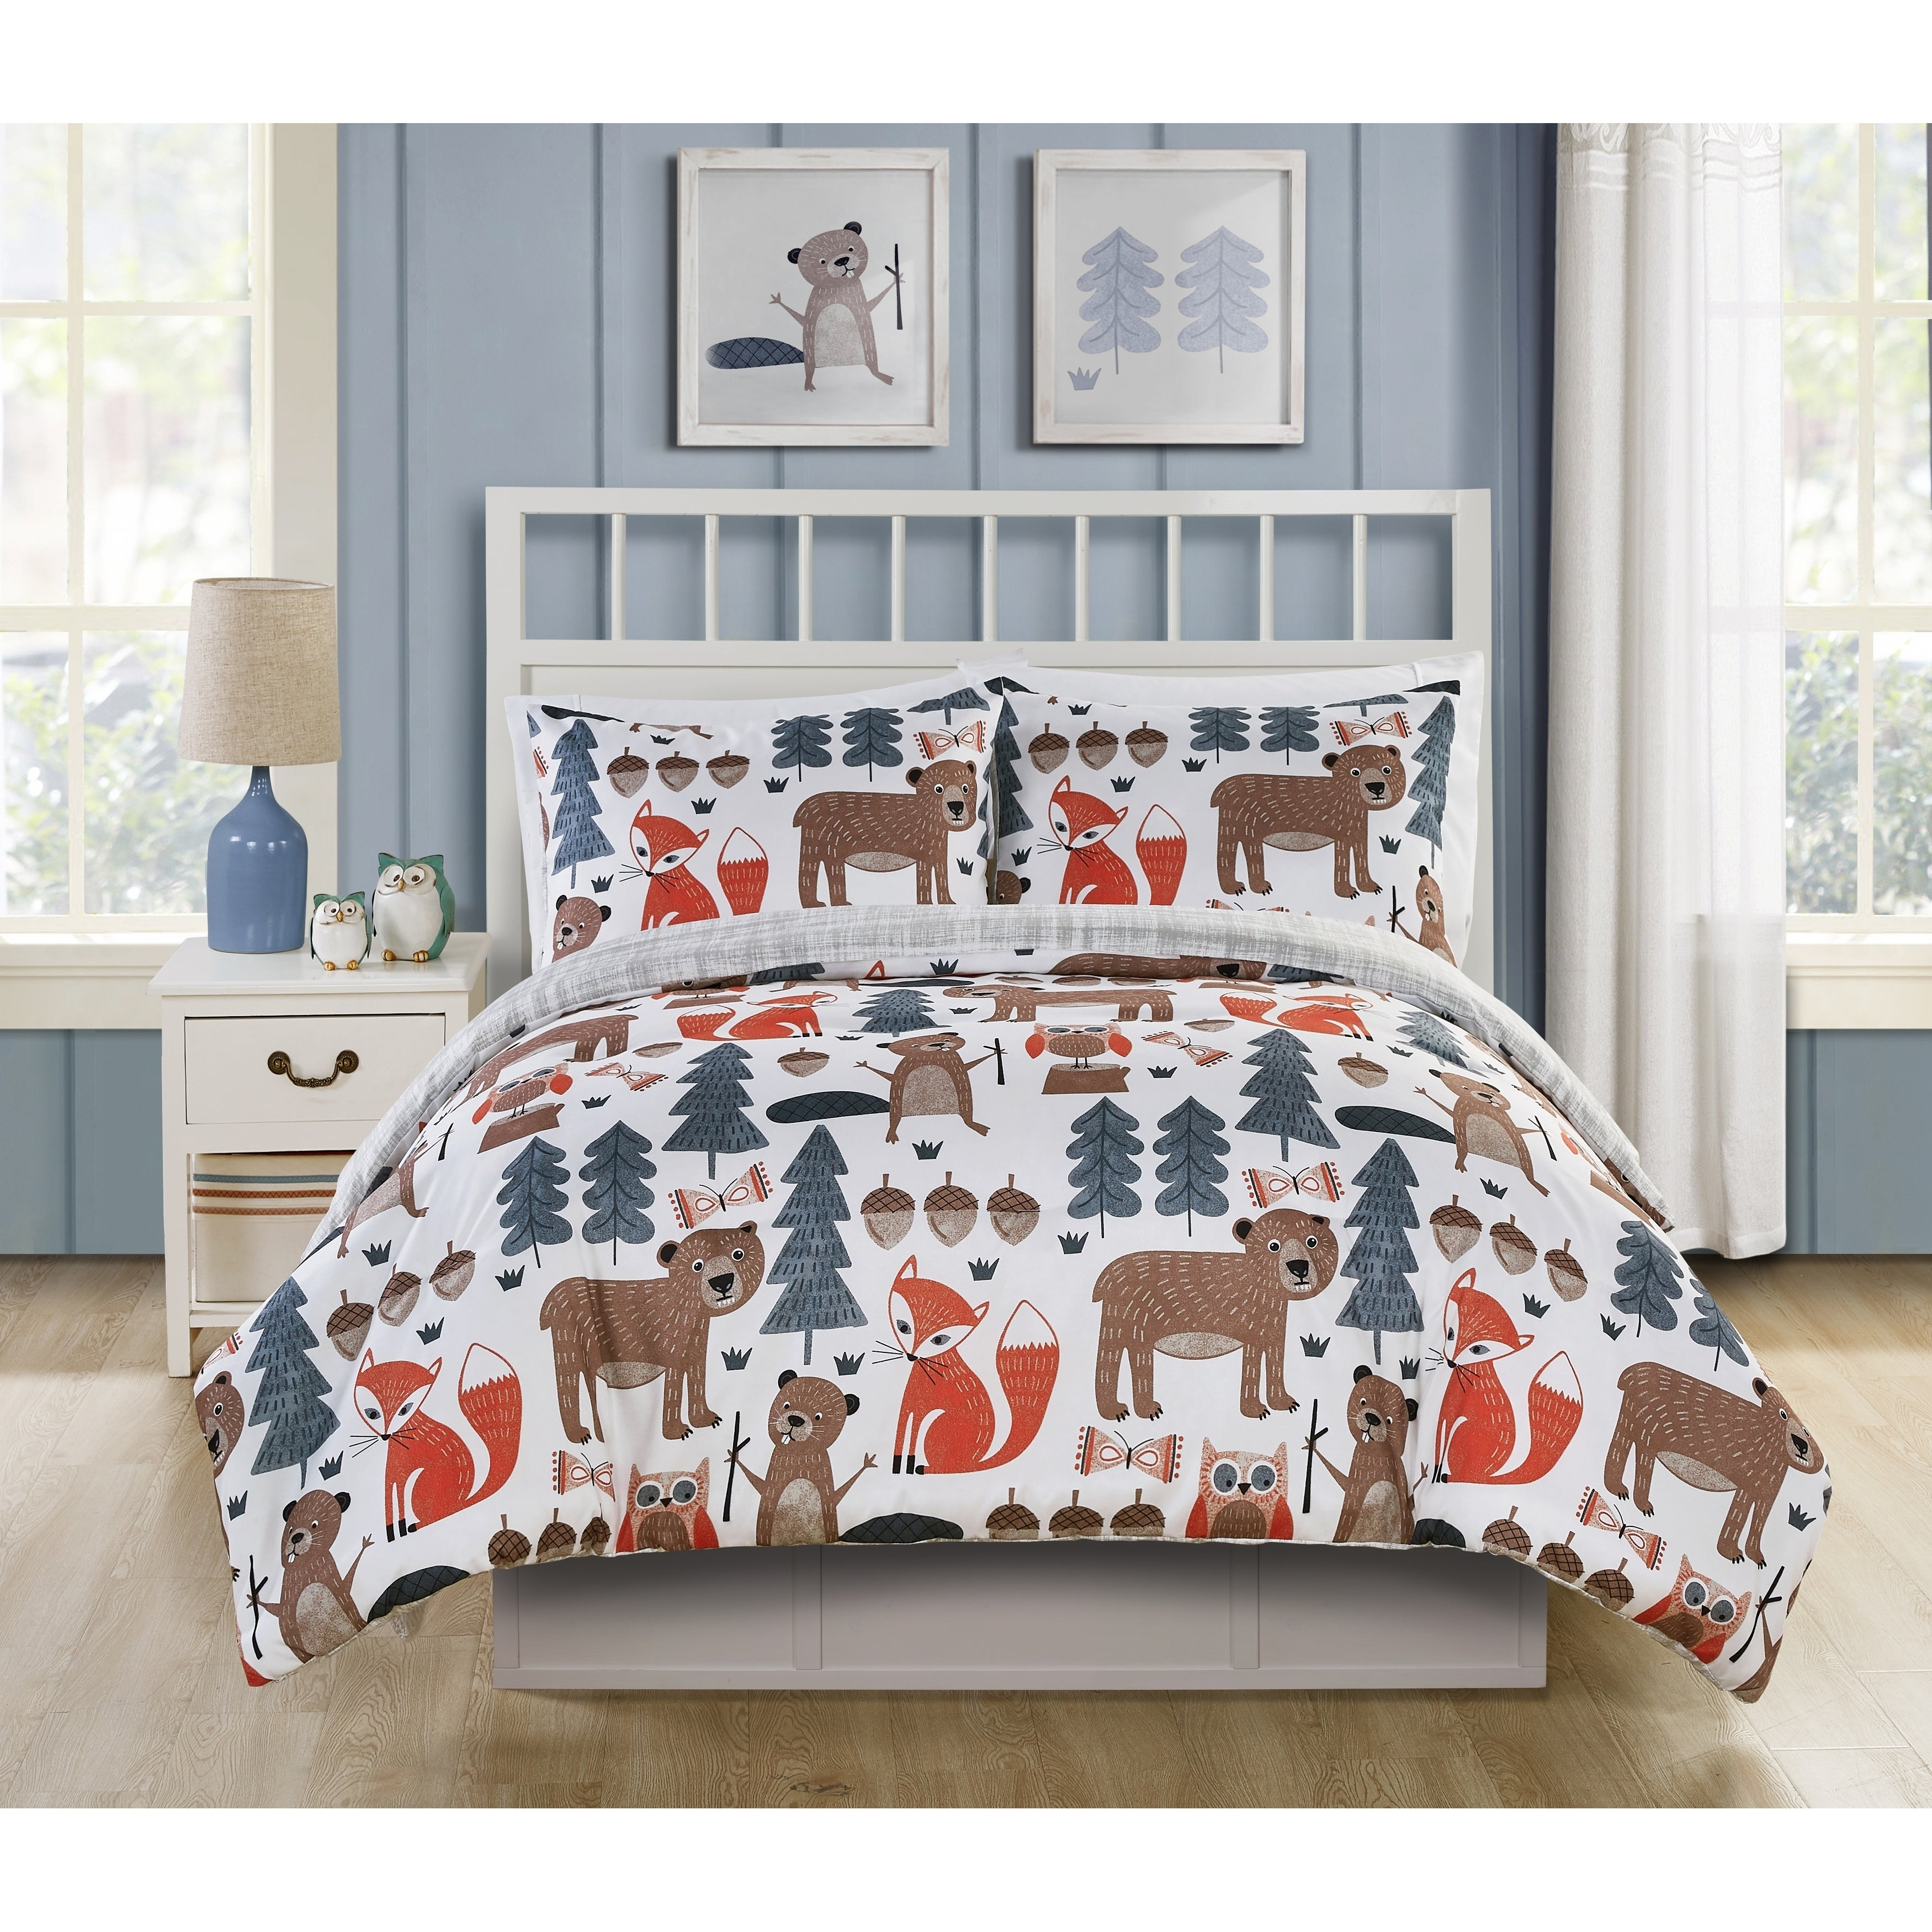 VCNY-Home-Little-Campers-Comforter-Set thumbnail 7